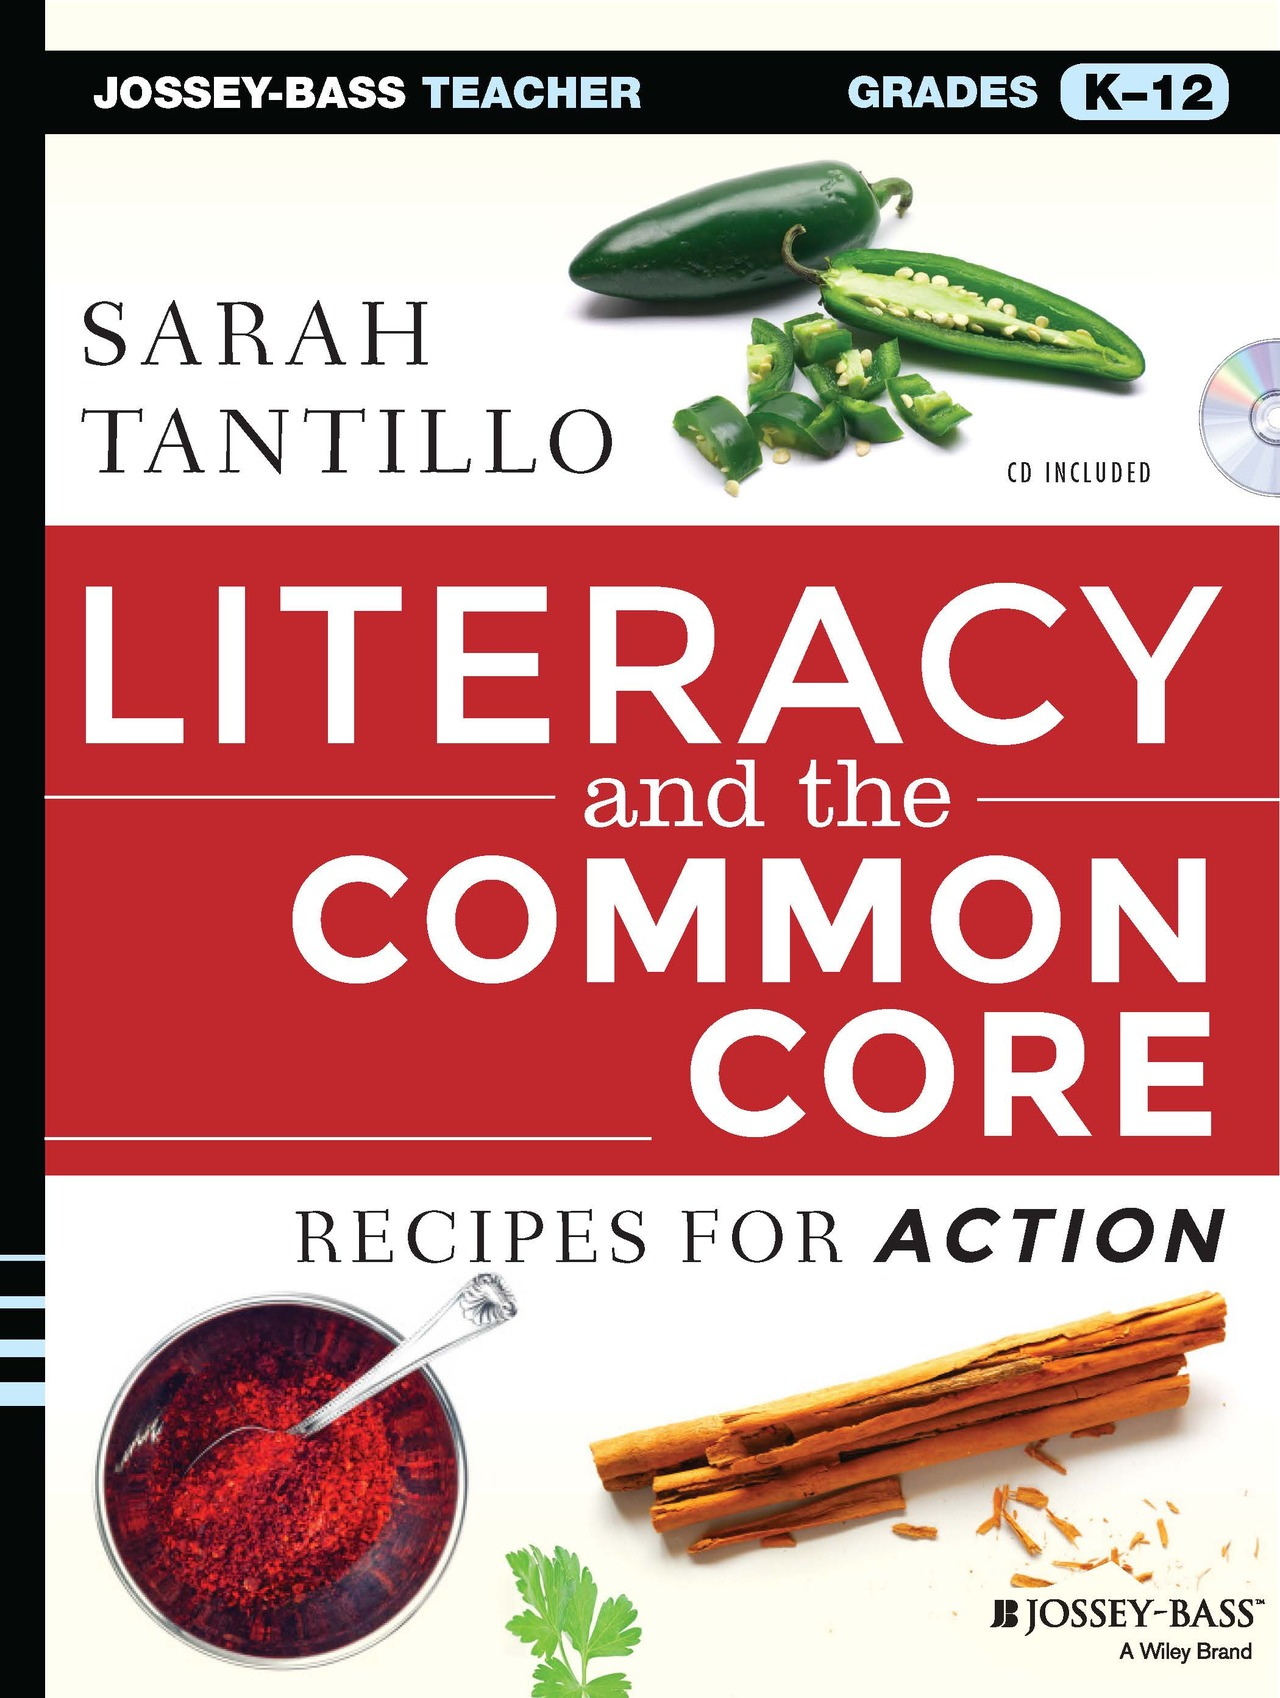 Literacy and the common core